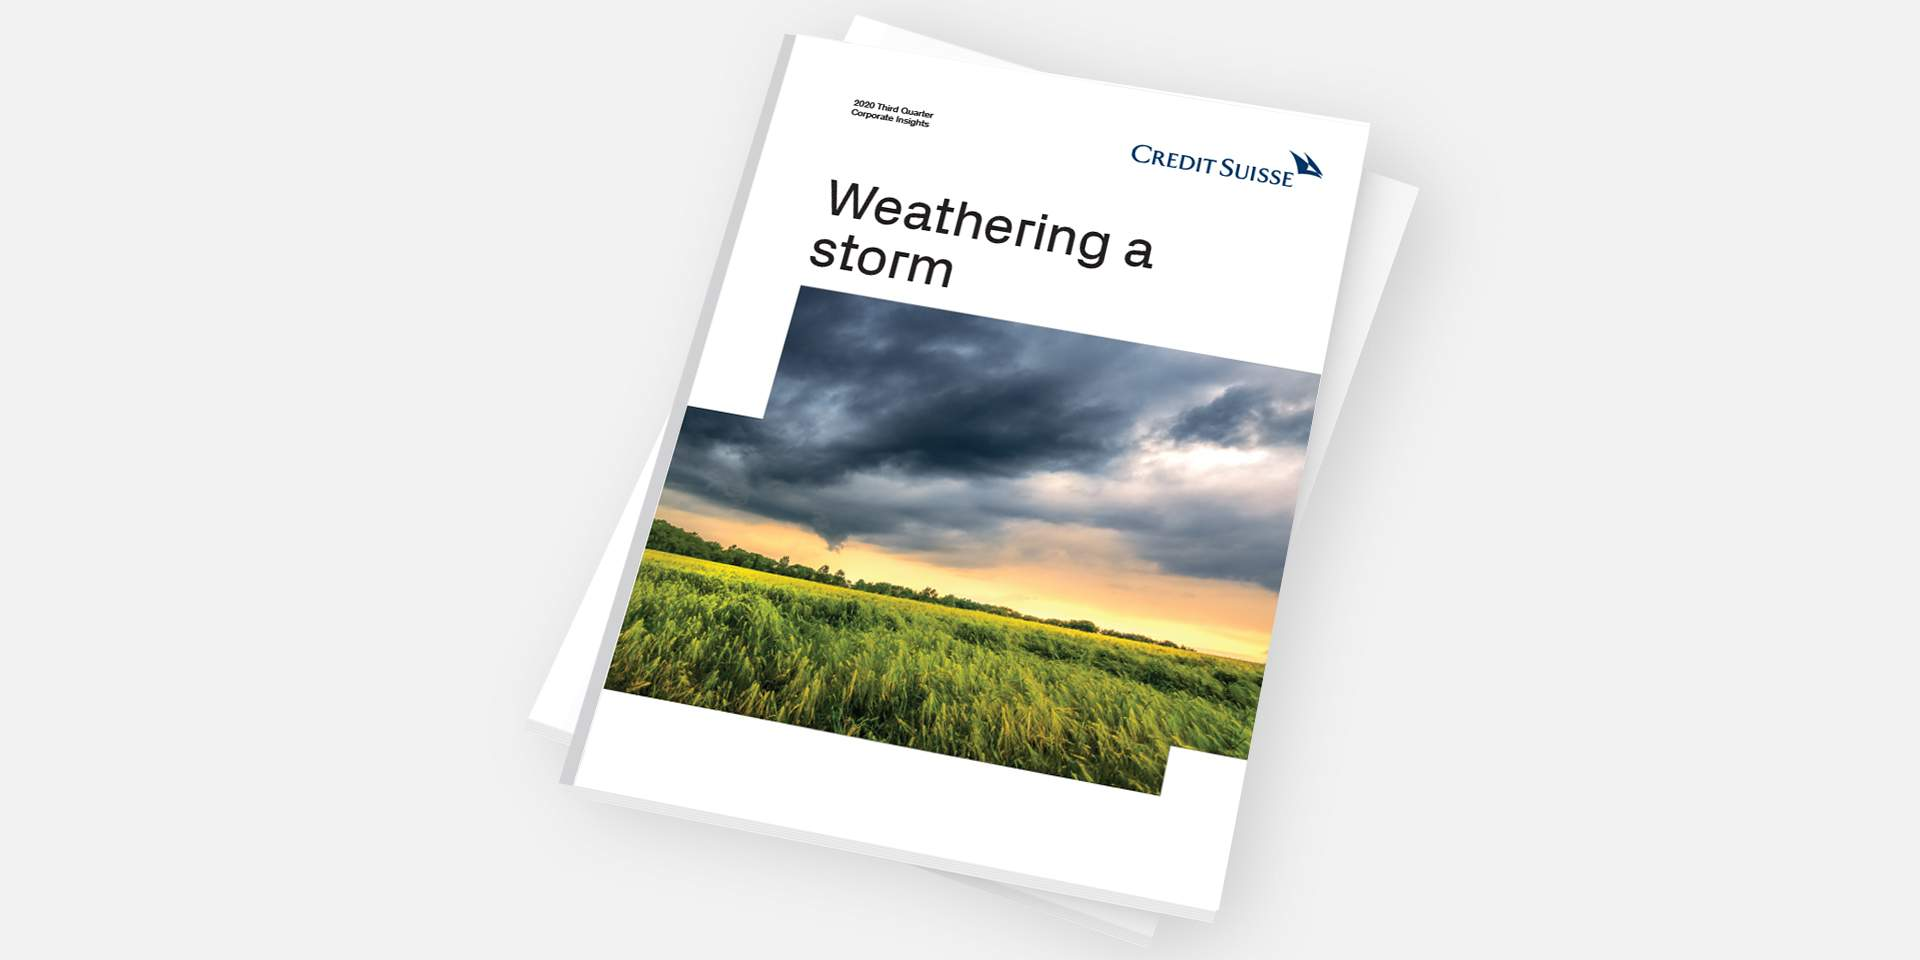 Weathering a storm